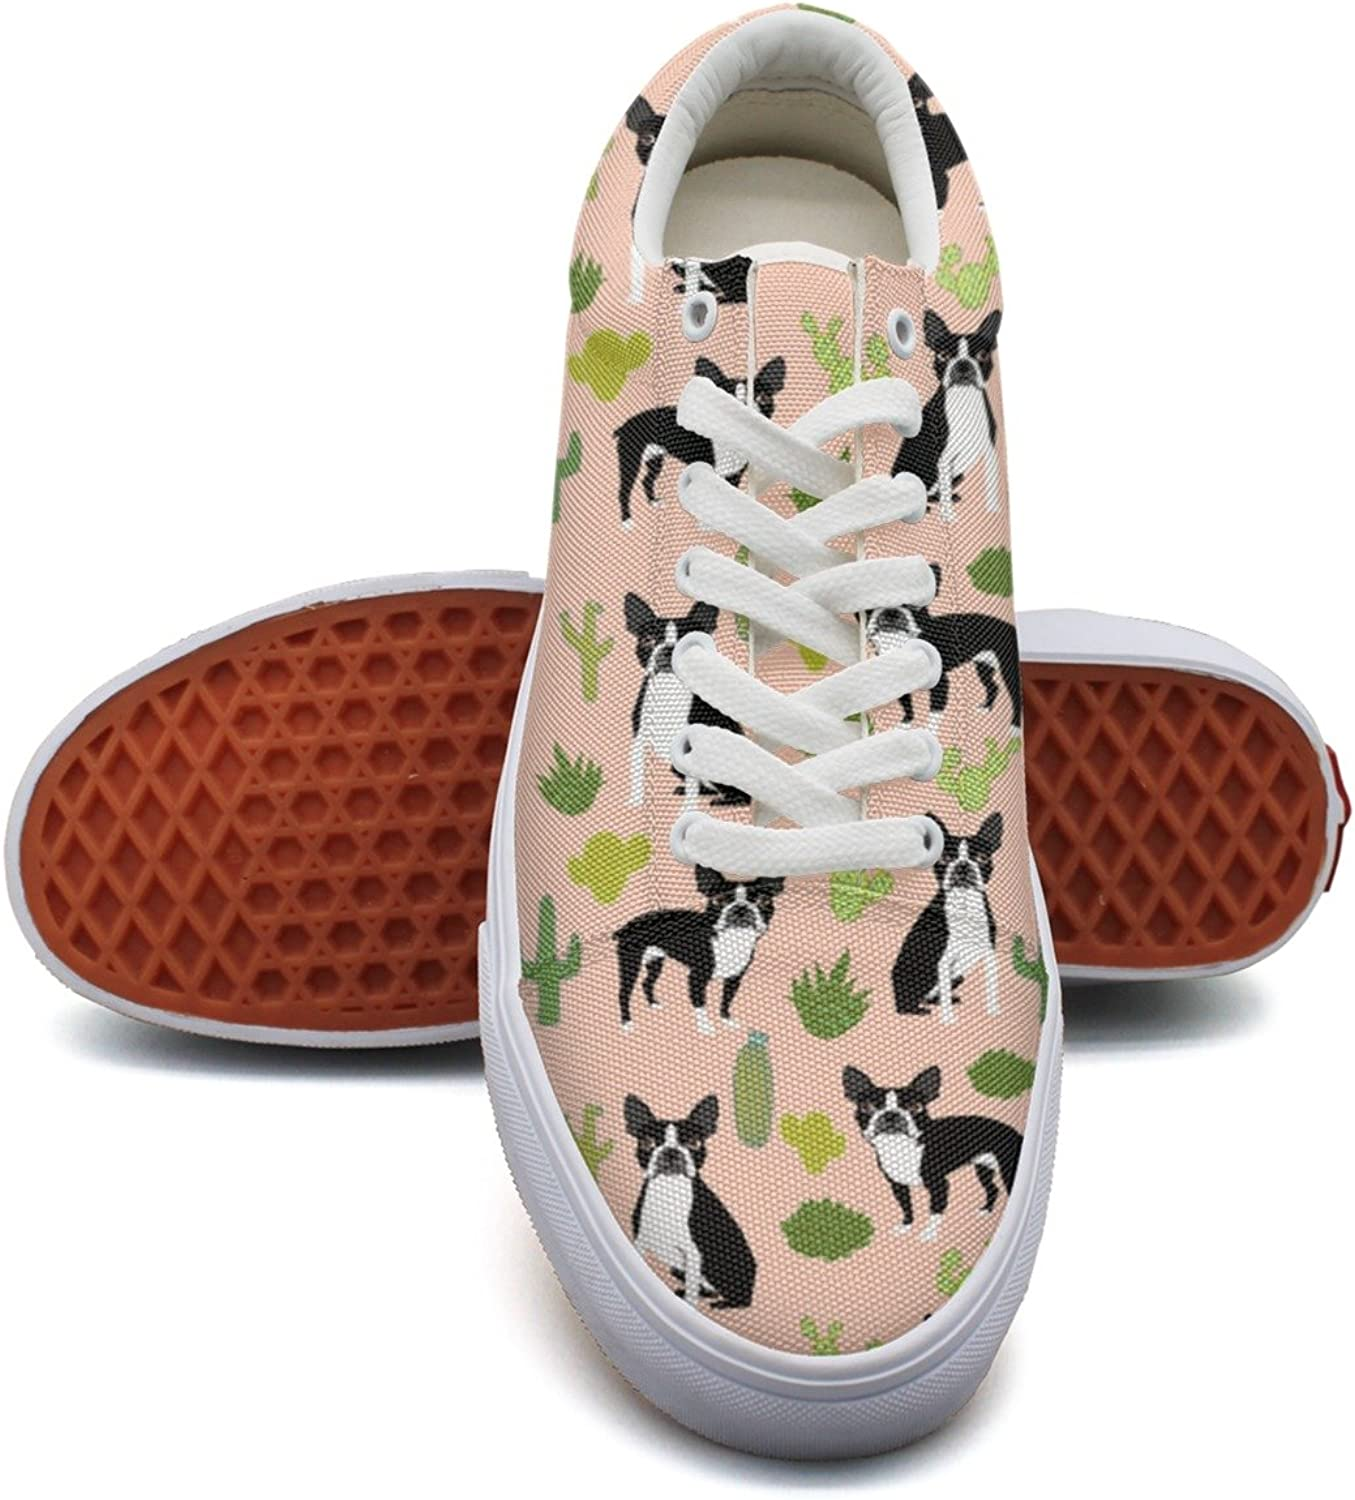 Feenfling Boston Terrier Dogs Cactus Womens Casual Sneakers shoes Low Top Retro Cloth shoes for Woman